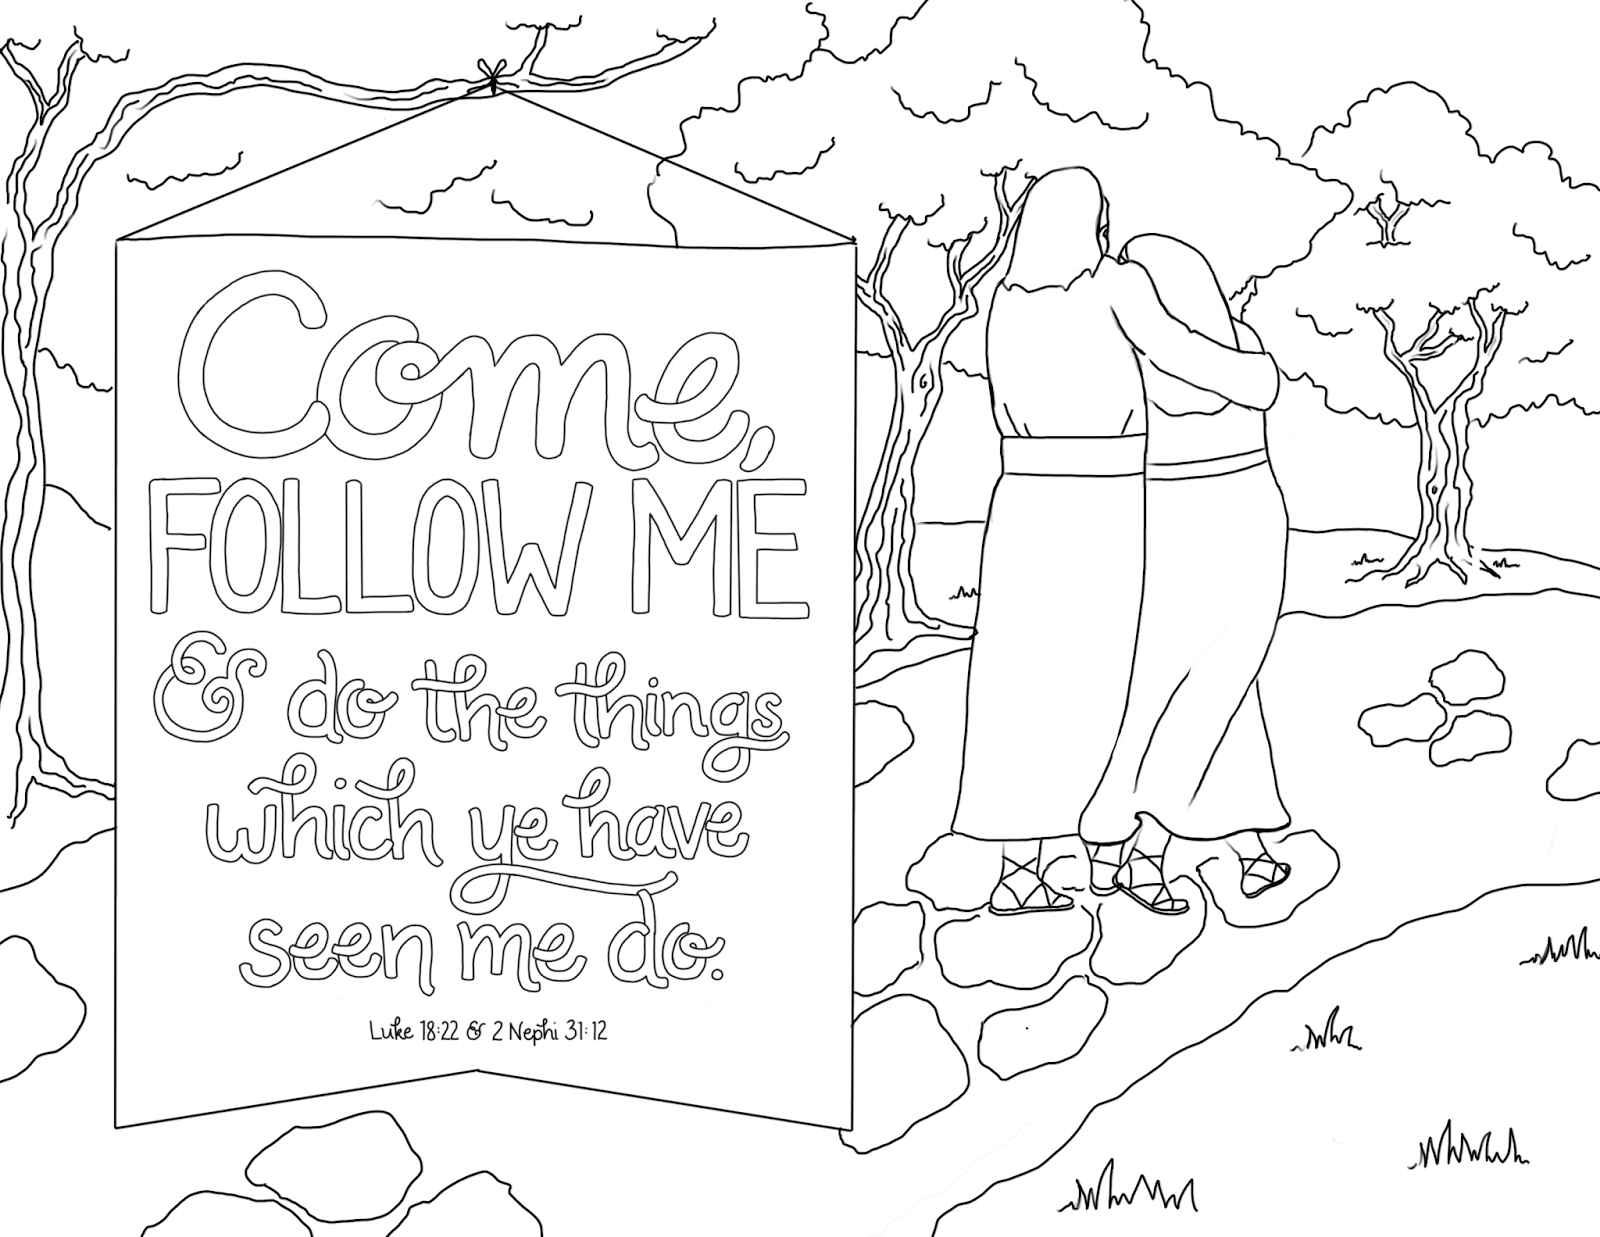 Come Follow Me And Do The Things Which Ye Have Seen Me Do A Mashup Of 2 Scriptures One From Jesus Coloring Pages Coloring Pages Bible Coloring Pages